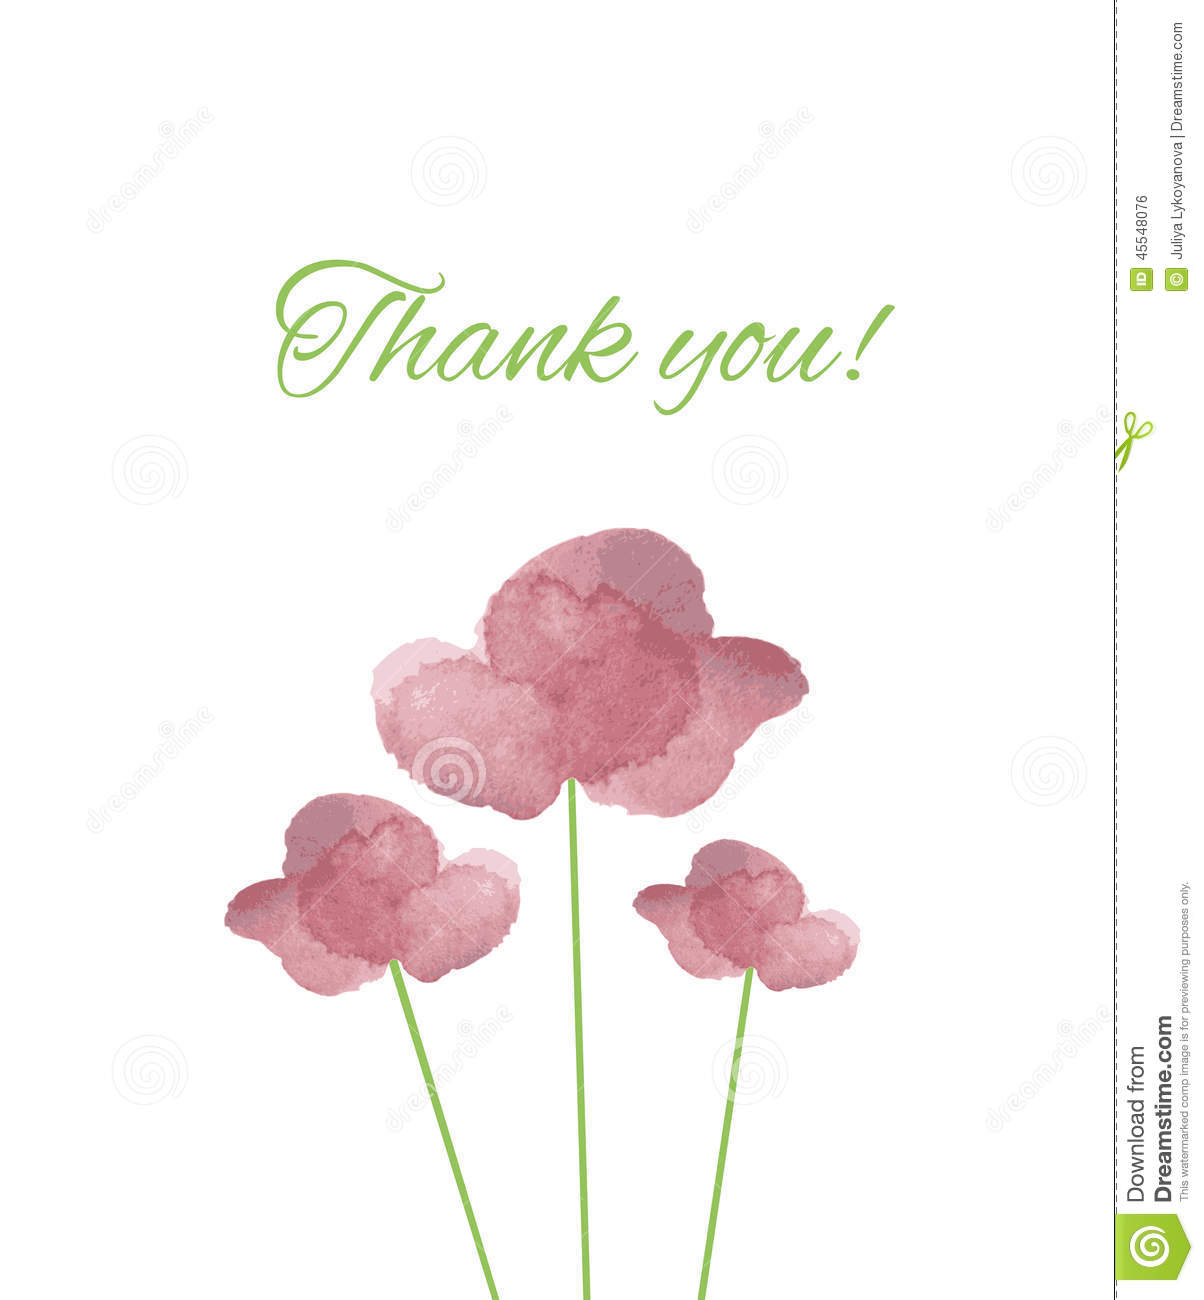 Thank You Calligraphy Vector With Watercolor Pink Flowers Stock Vector